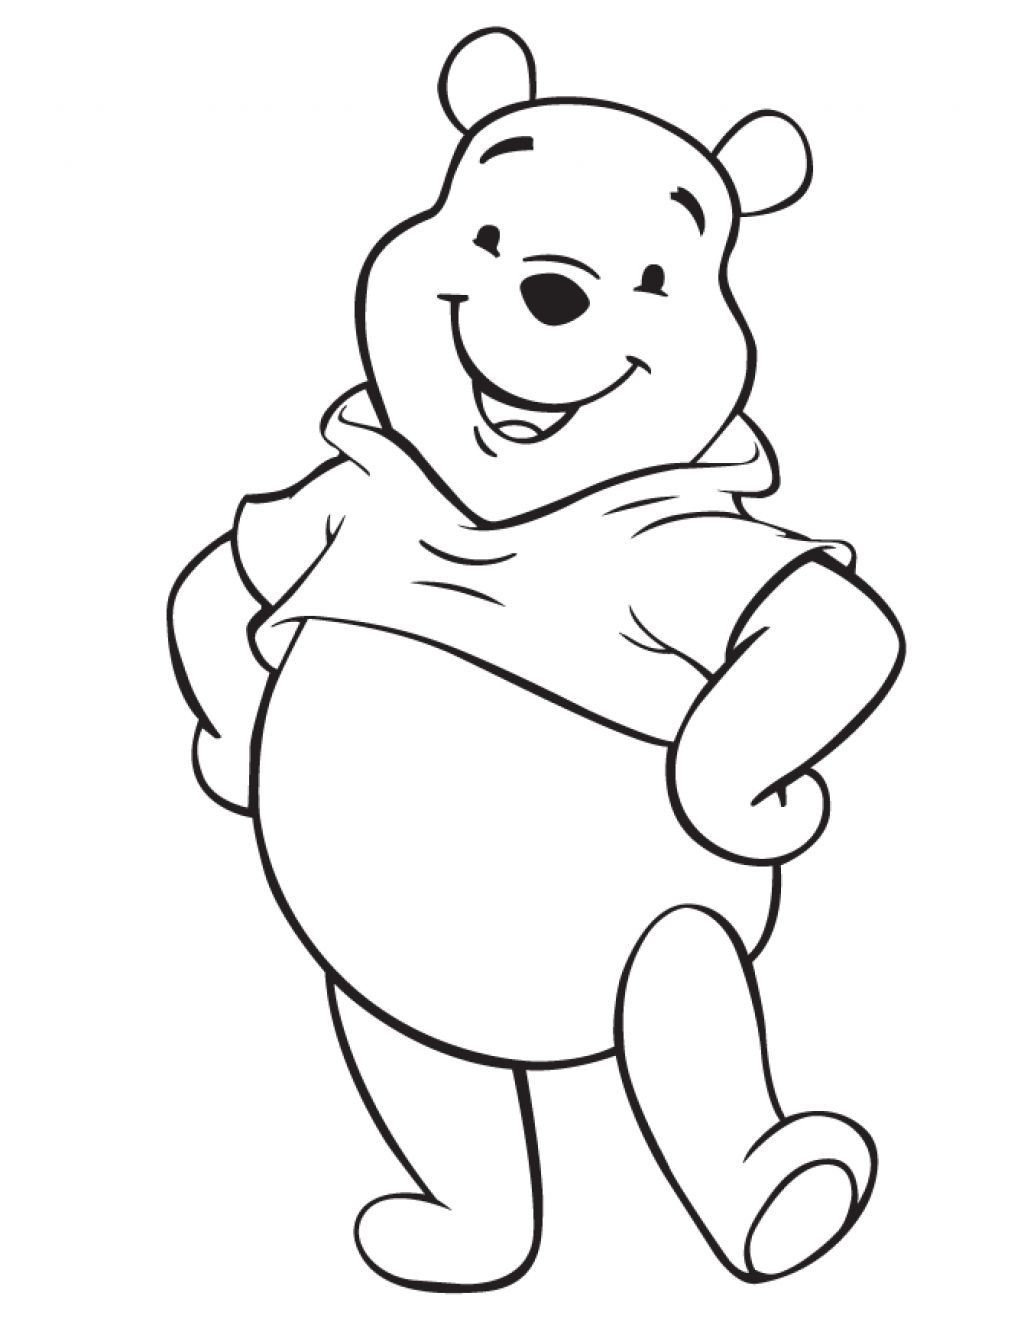 Disney Characters Coloring Pages Easy Baby Cartoon